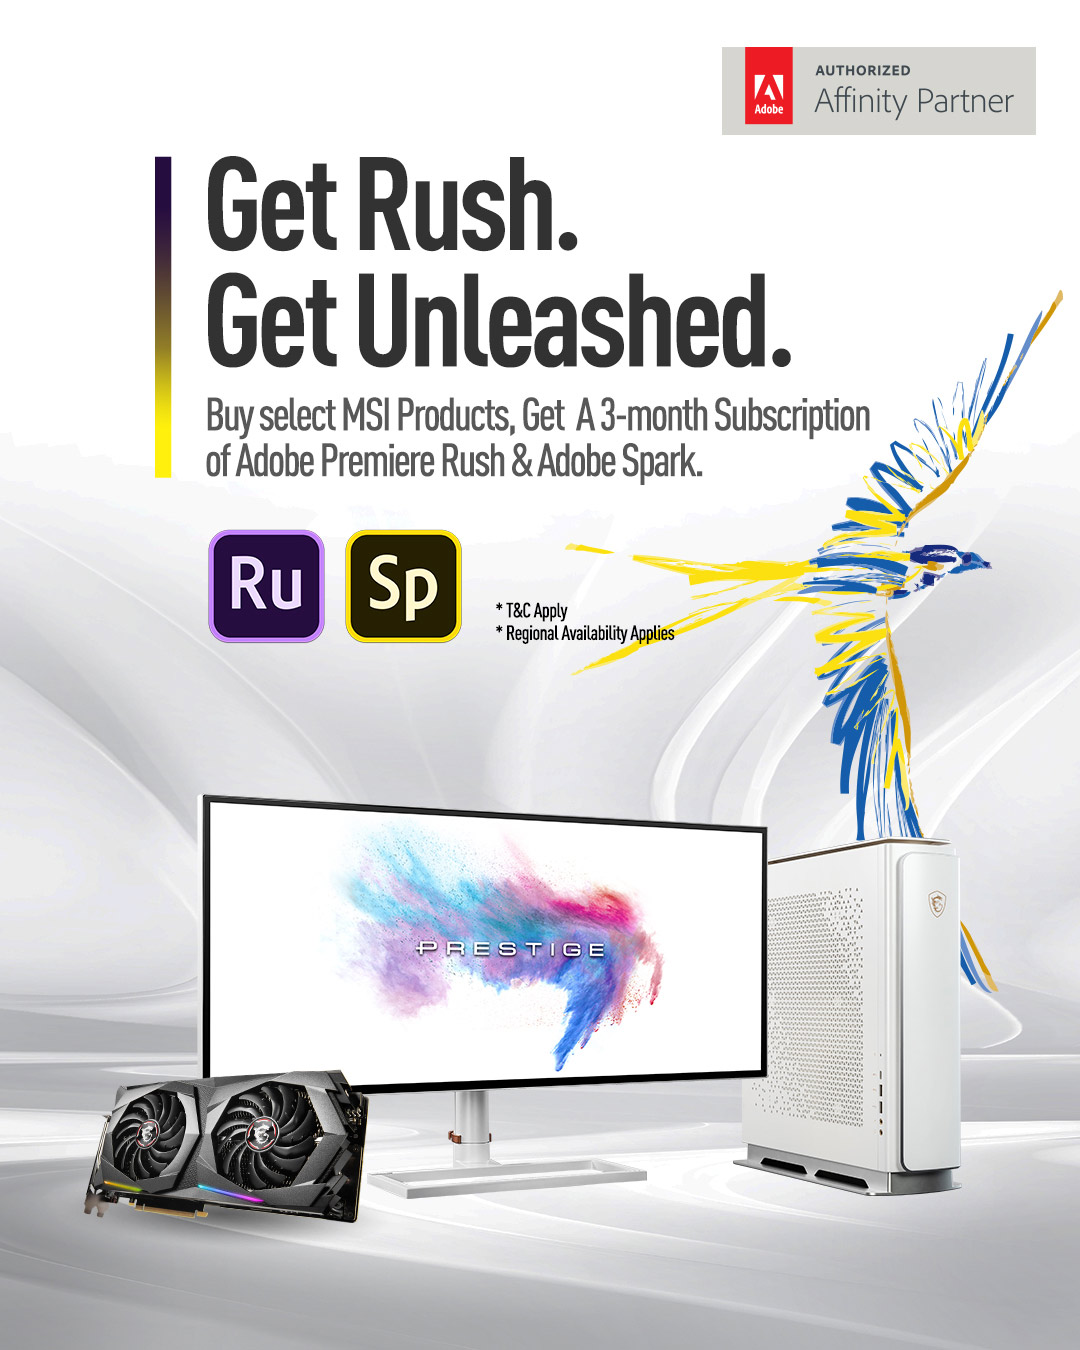 Get Rush. Get Unleashec.